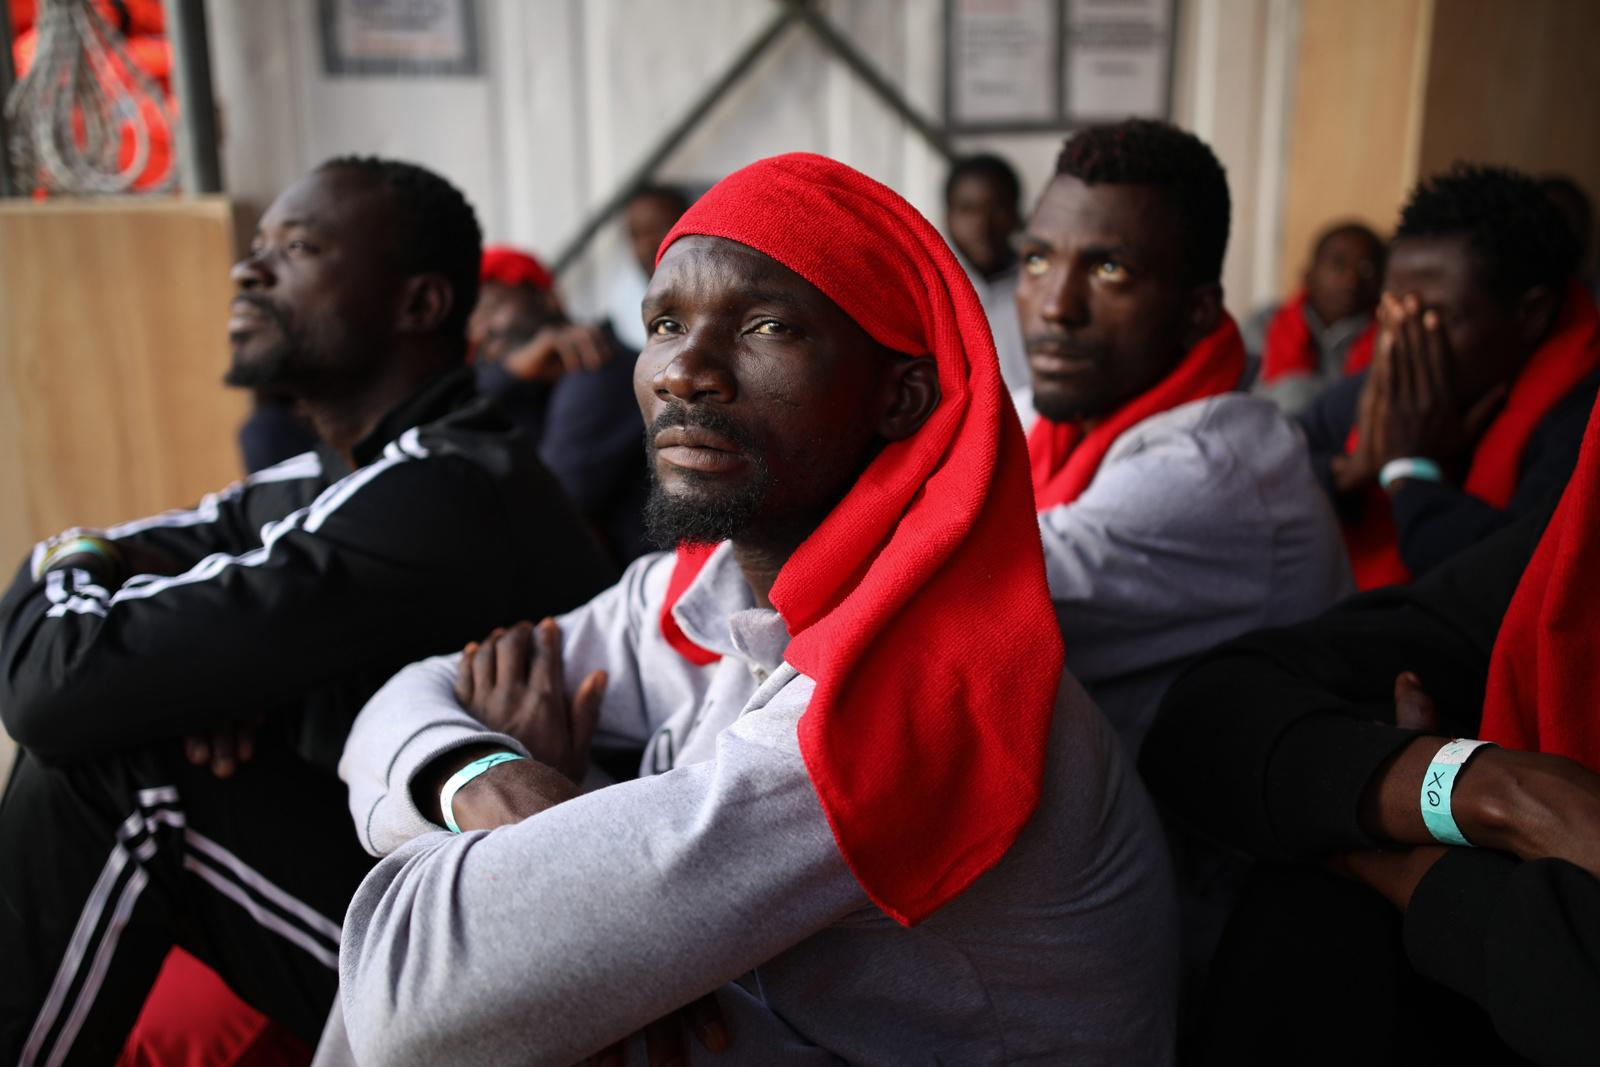 Ghanaian refugee Dramani Ahmed (center), 30, and fellow refugees from Ghana and Nigeria wait for their disembarkation from the rescue vessel 'VOS Hestia' at the port of Trapani, Italy, two days after they have been rescued from a dinghy, crossing the Mediterranean from Libya to Italy, June 05, 2017. The sea journey took the life of Ahmed's friend Zibo, among four casualties in total. The Central Mediterranean route is the world's deadliest migration route. Of the estimated 3,080 people that have died or gone missing while trying to reach Europe by sea via the three Mediterranean routes until end of November 2017, over 94% of deaths have occurred from North Africa to Italy, according to UNHCR. Over 117,000 refugees and migrants arrived in Italy by sea in 2017, about 32% less compared to 2016.